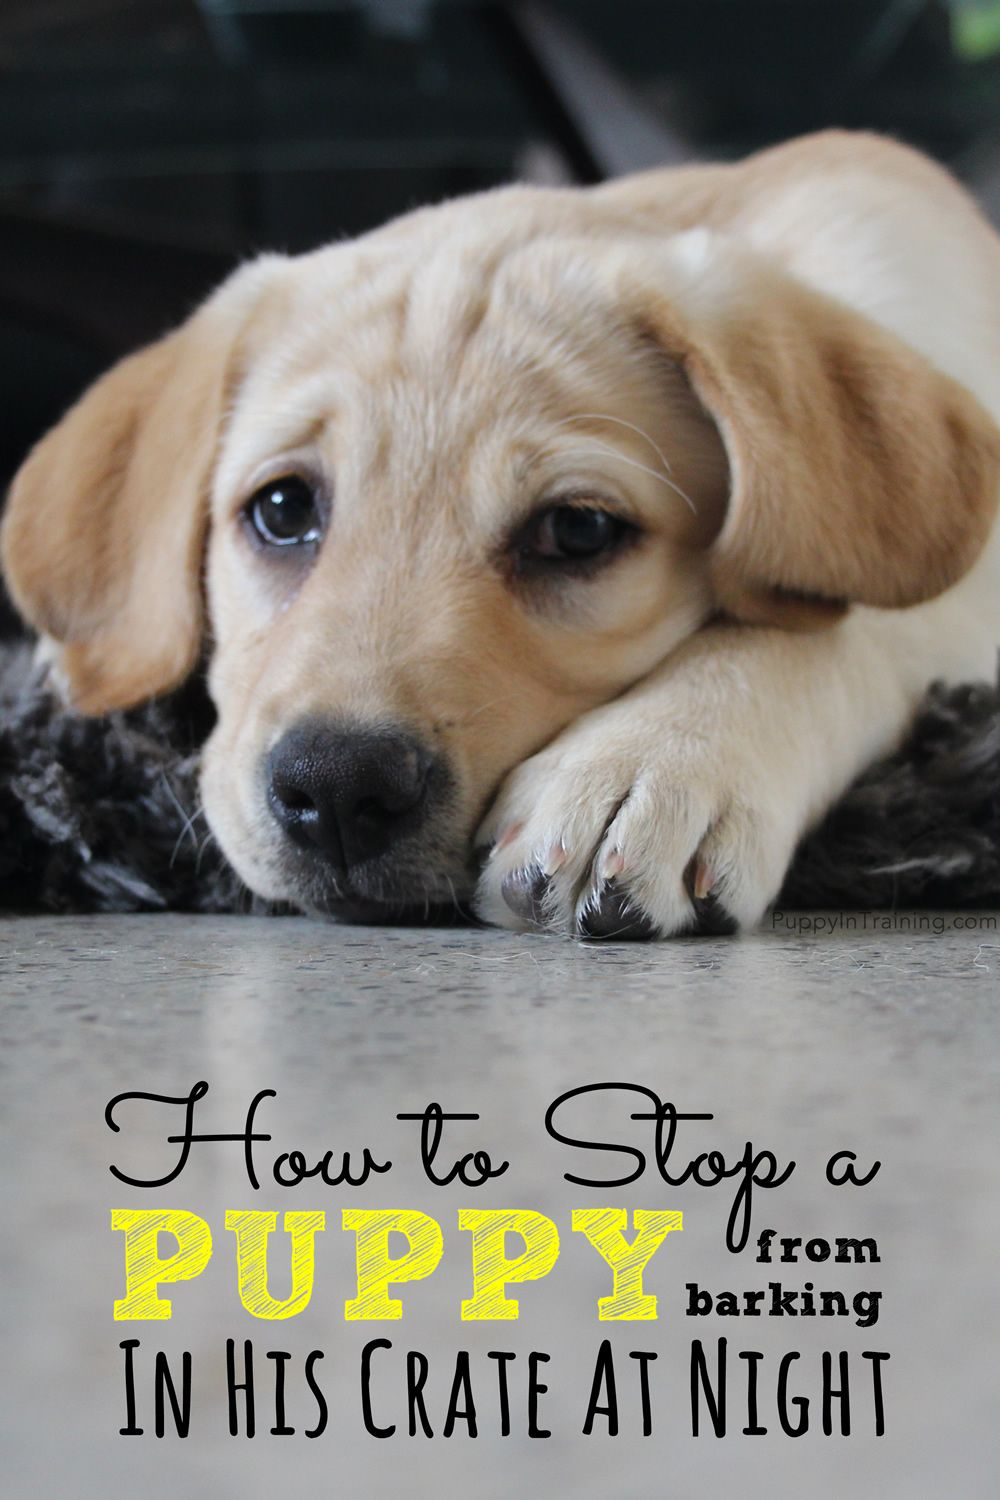 How To Stop A Puppy From Barking In His Crate At Night Puppy